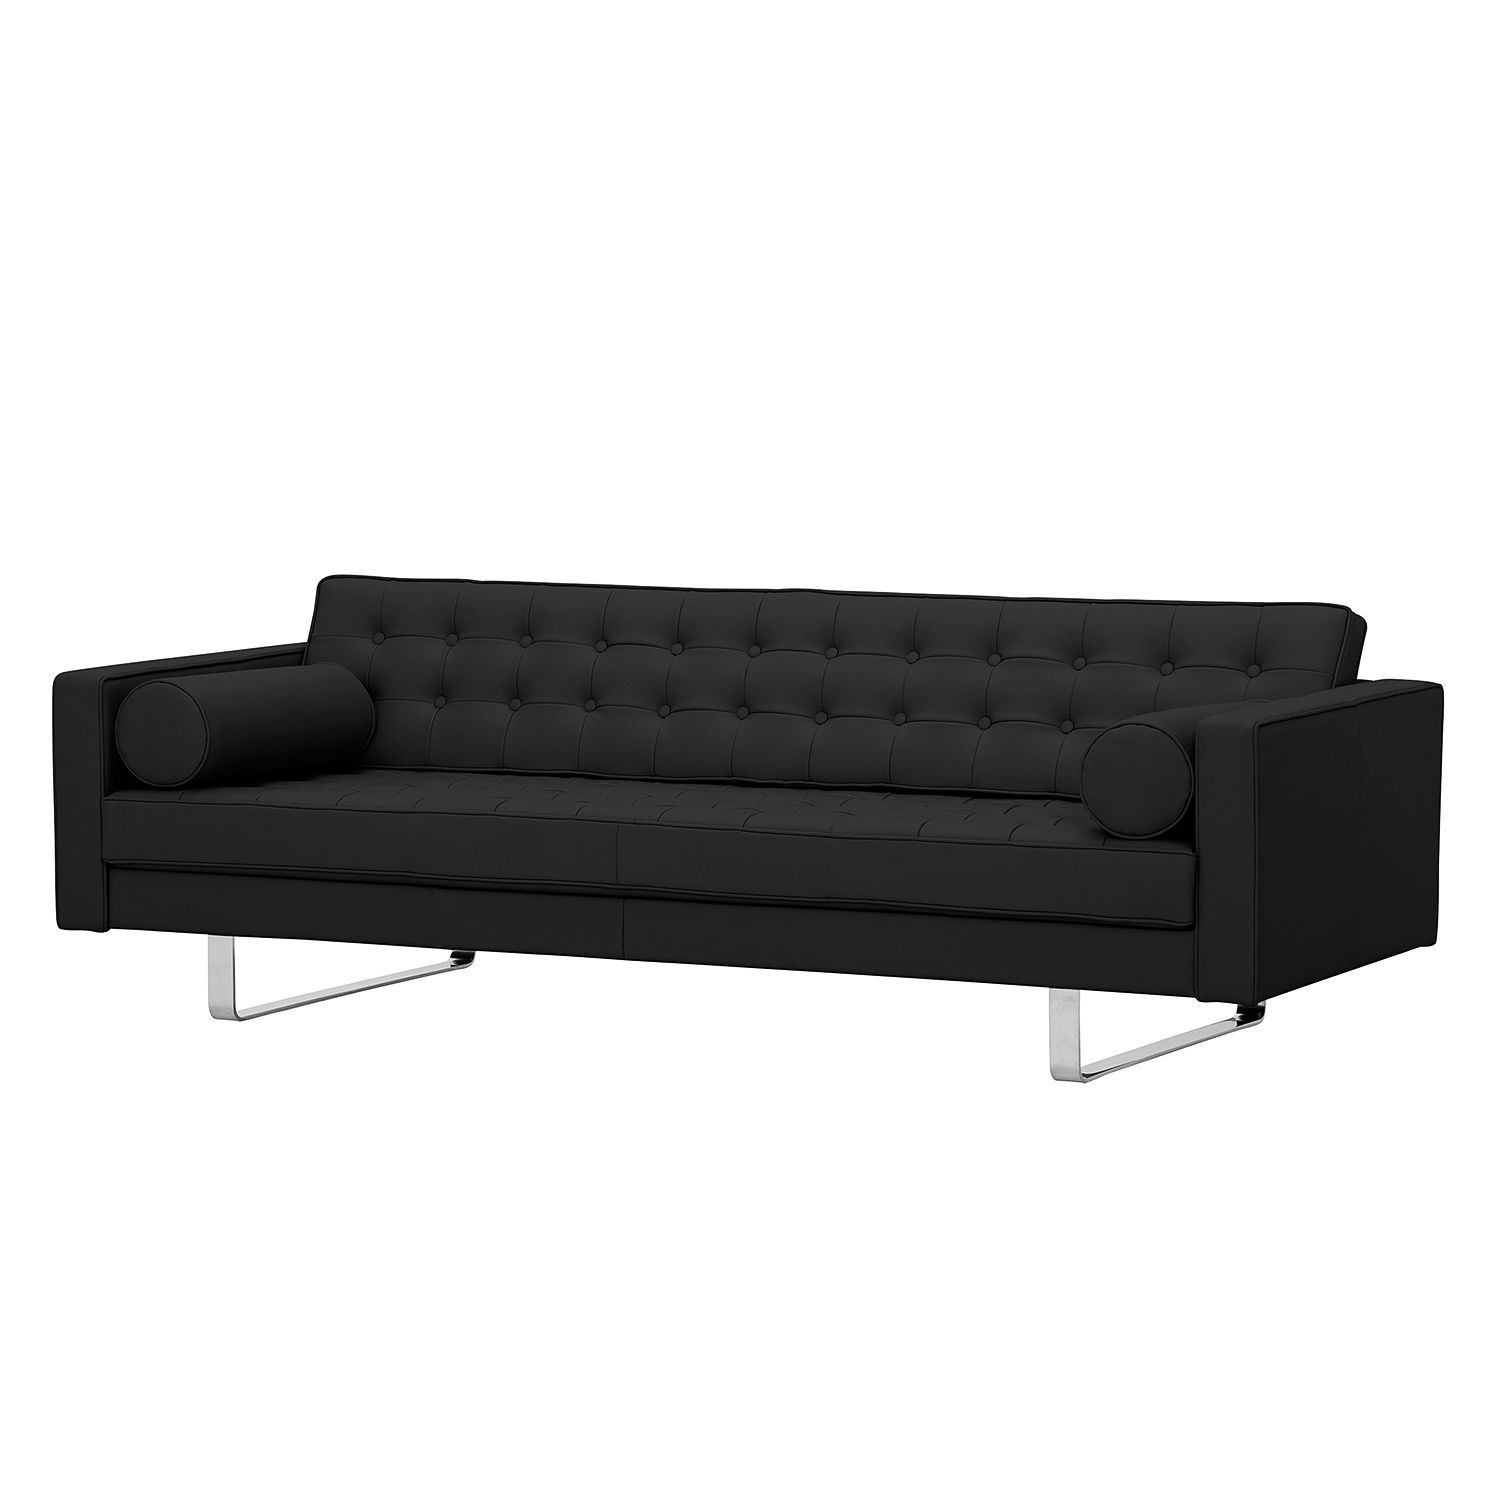 30 sparen sofa chelsea von studio copenhagen nur 1. Black Bedroom Furniture Sets. Home Design Ideas